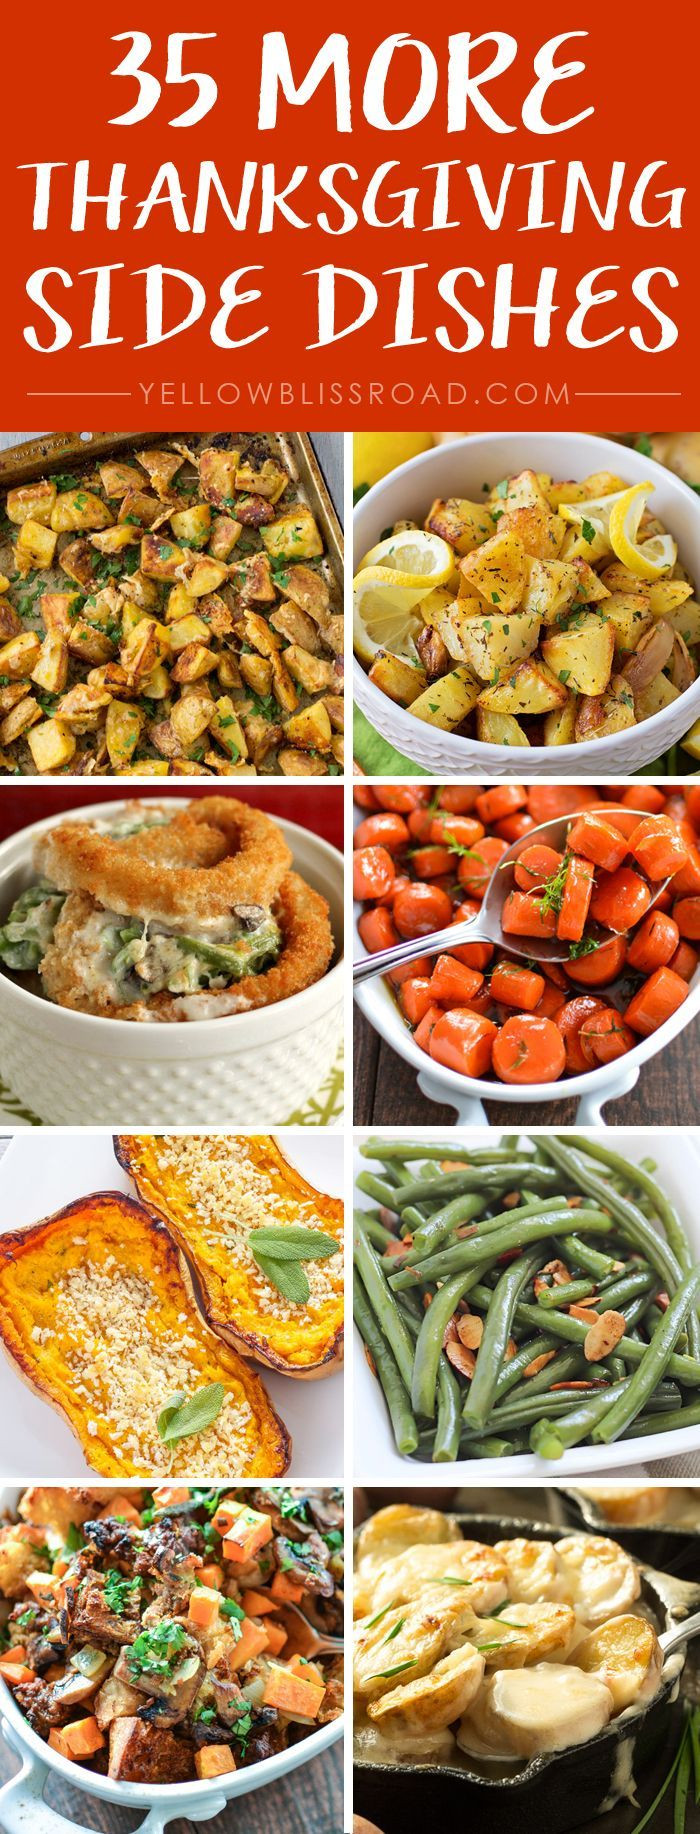 Ideas For Thanksgiving Dinner Side Dishes  17 Best images about Thanksgiving ideas on Pinterest